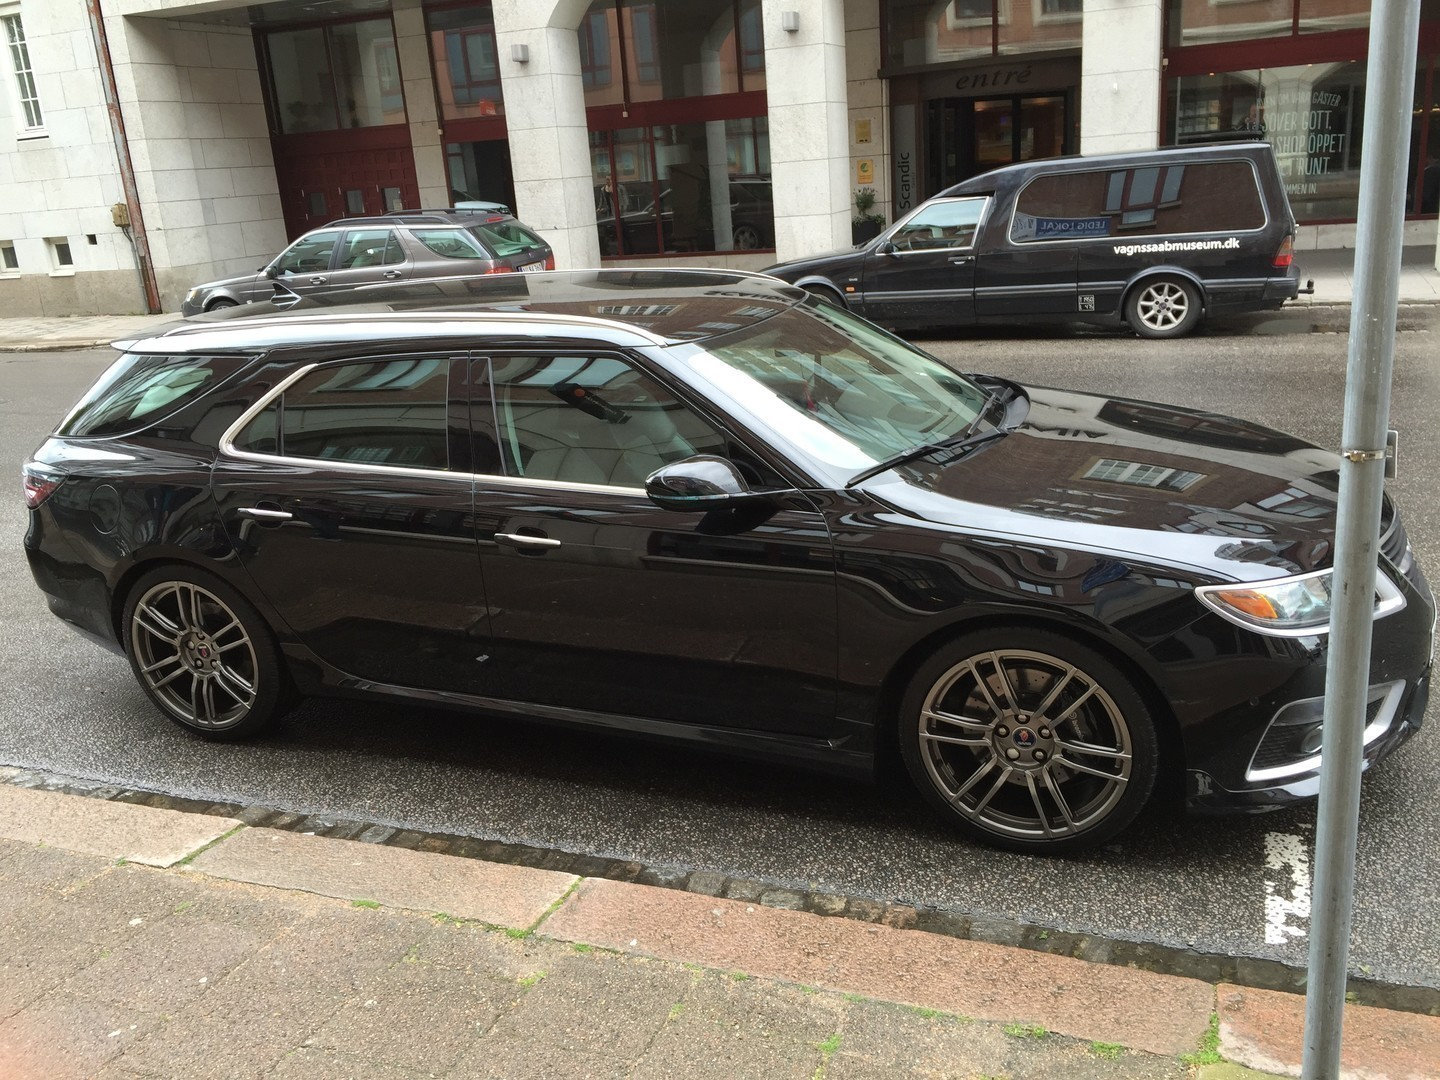 saab car museum support with 2015 06 06 12 39 03 on 2015 06 06 09 34 34 in addition Img 3097 further 2015 06 06 19 32 27 in addition Saab 97 as well Dsc 0004 1920x1200.